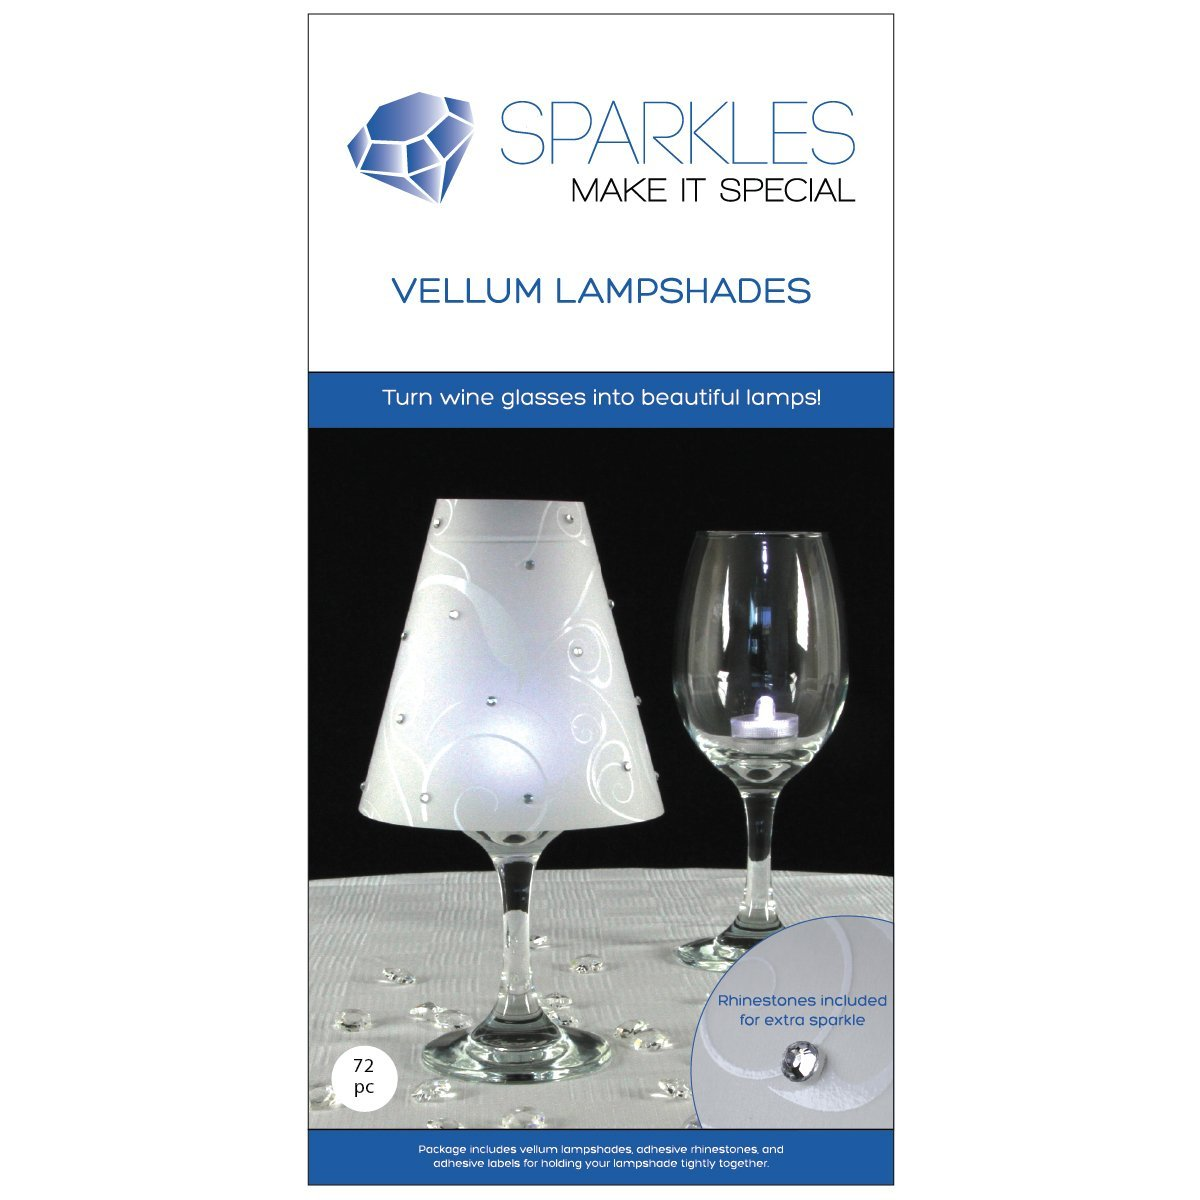 Sparkles Make It Special 72 pc Wine Glass Lamp Shades with Rhinestones - Wedding Party Table Centerpiece Decoration - White Vellum Swirl Print